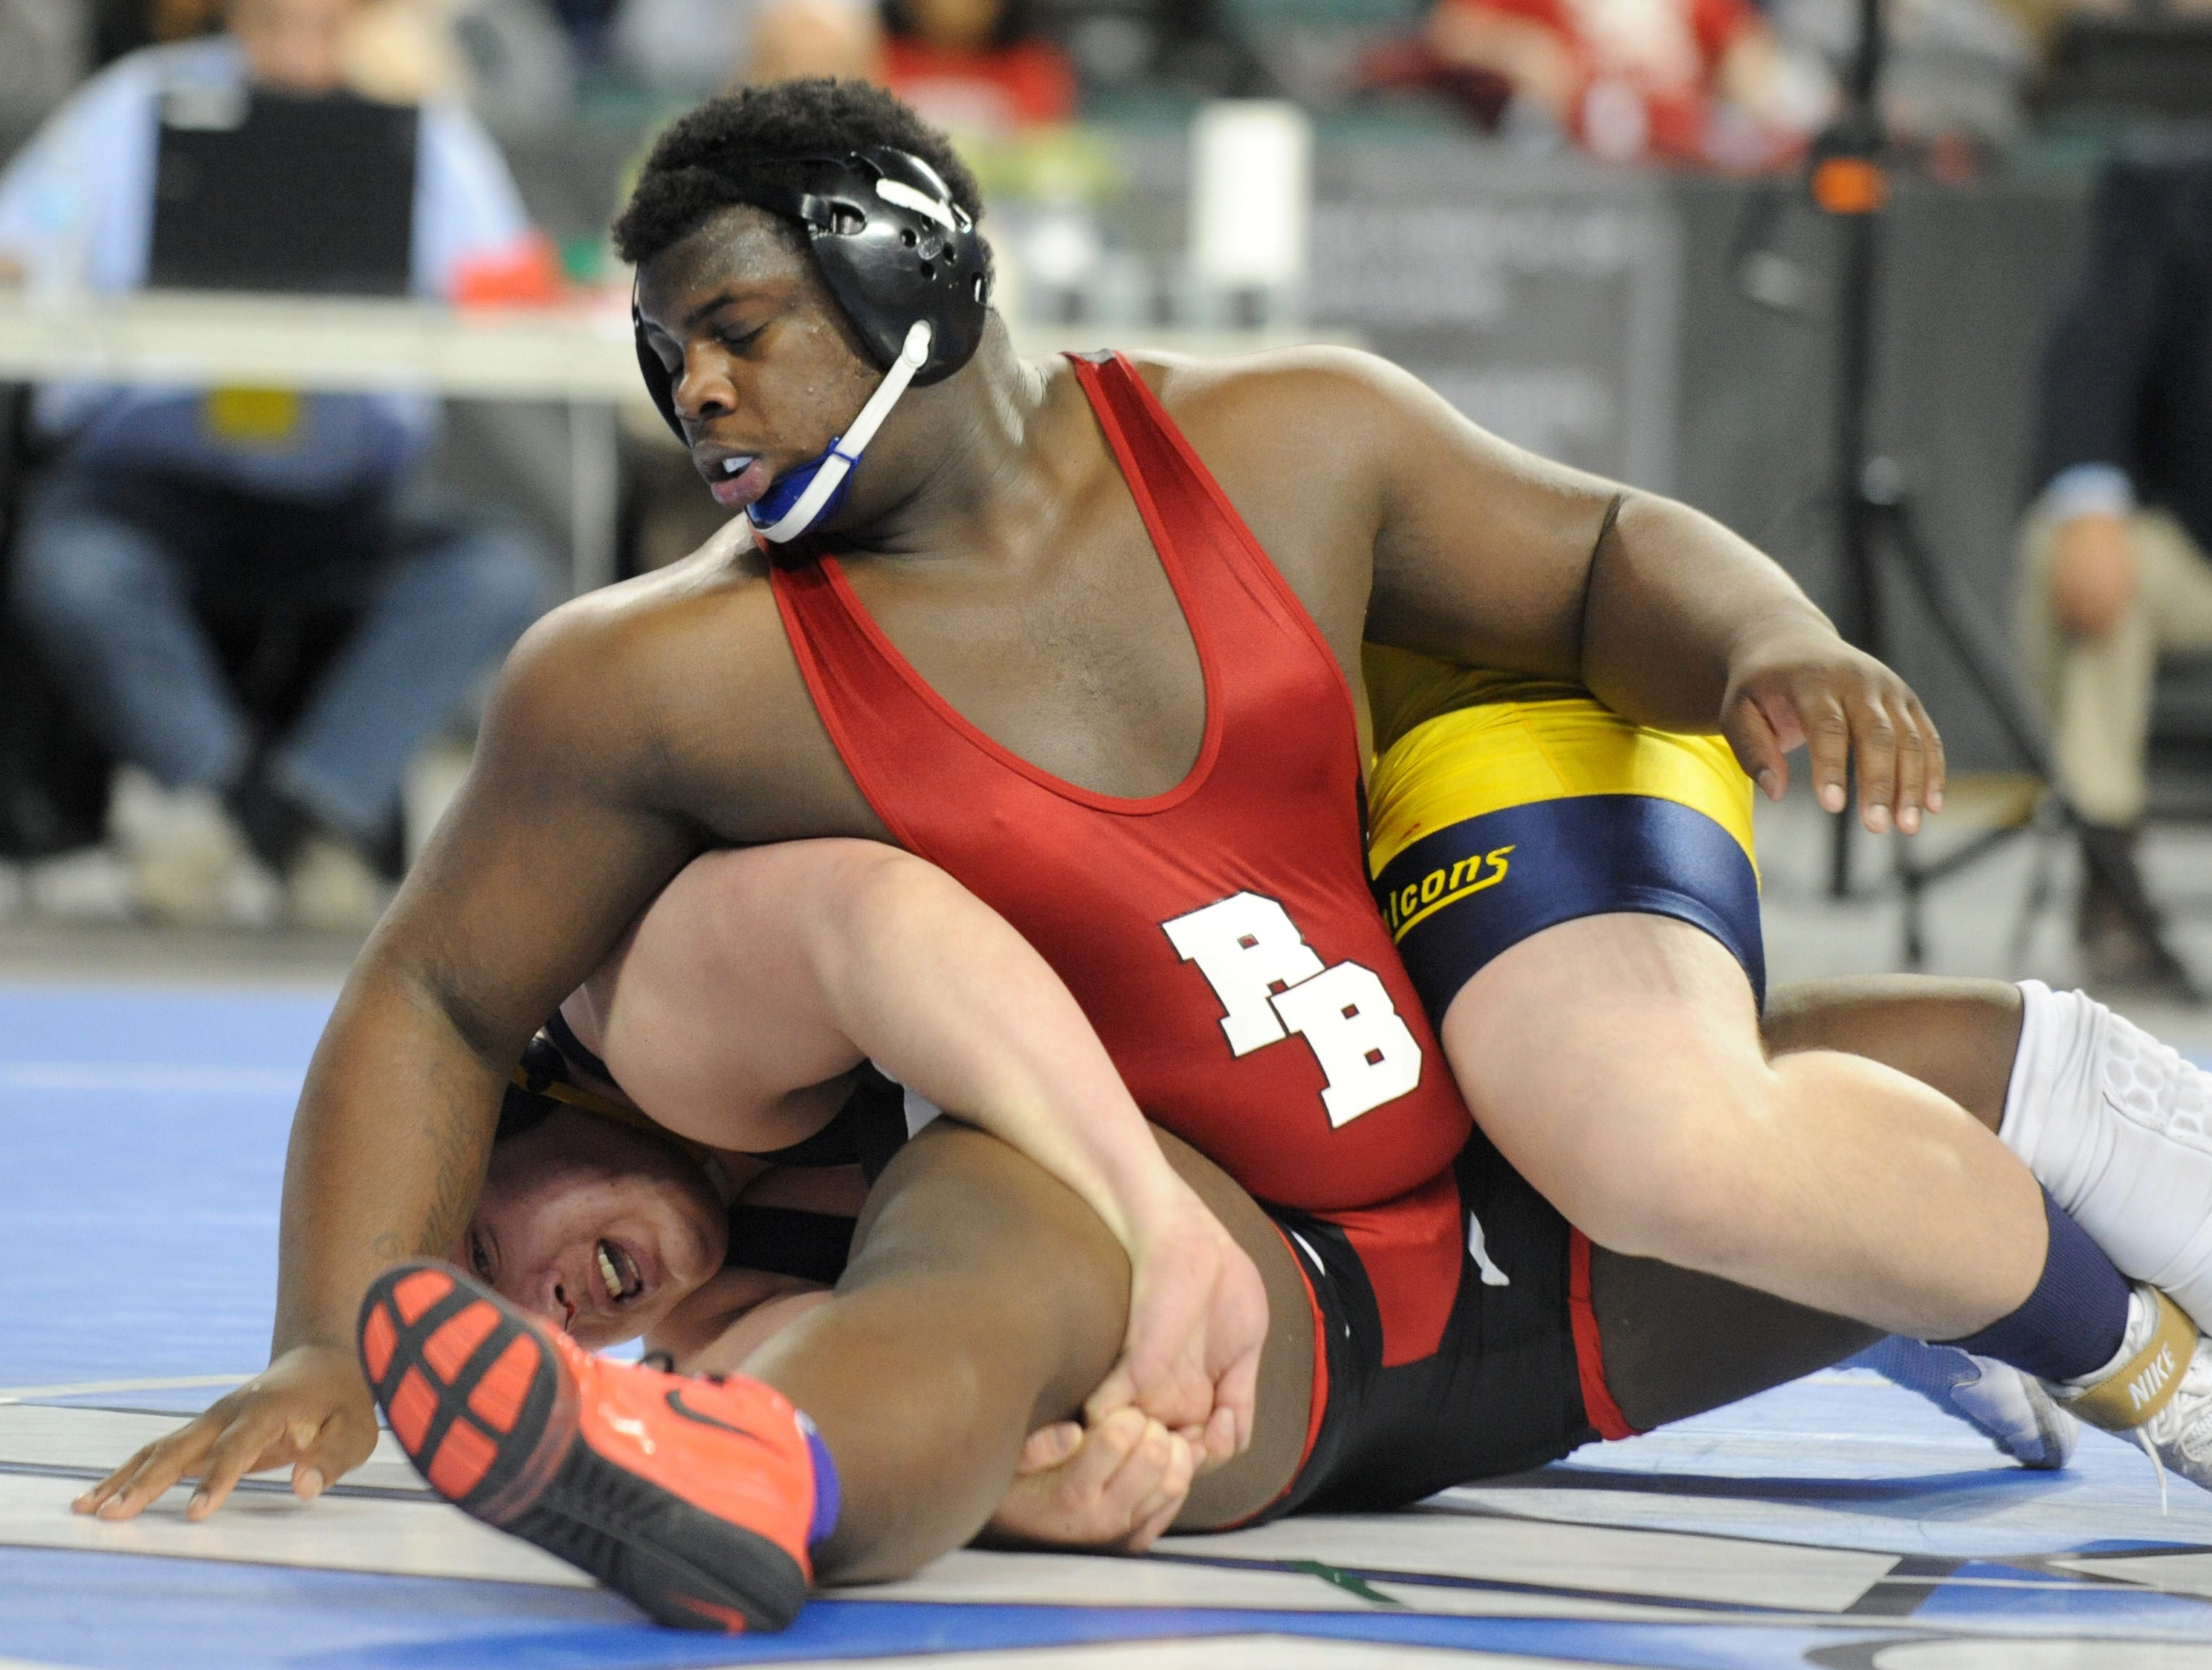 Bound Brook's Jervey Sistrunk wrestles Saddle Brook's Dean Setticase in a 285-pound 3rd place bout during the NJSIAA Individual Wrestling Championships at Boardwalk Hall in Atlantic City, Saturday, March 2, 2019.